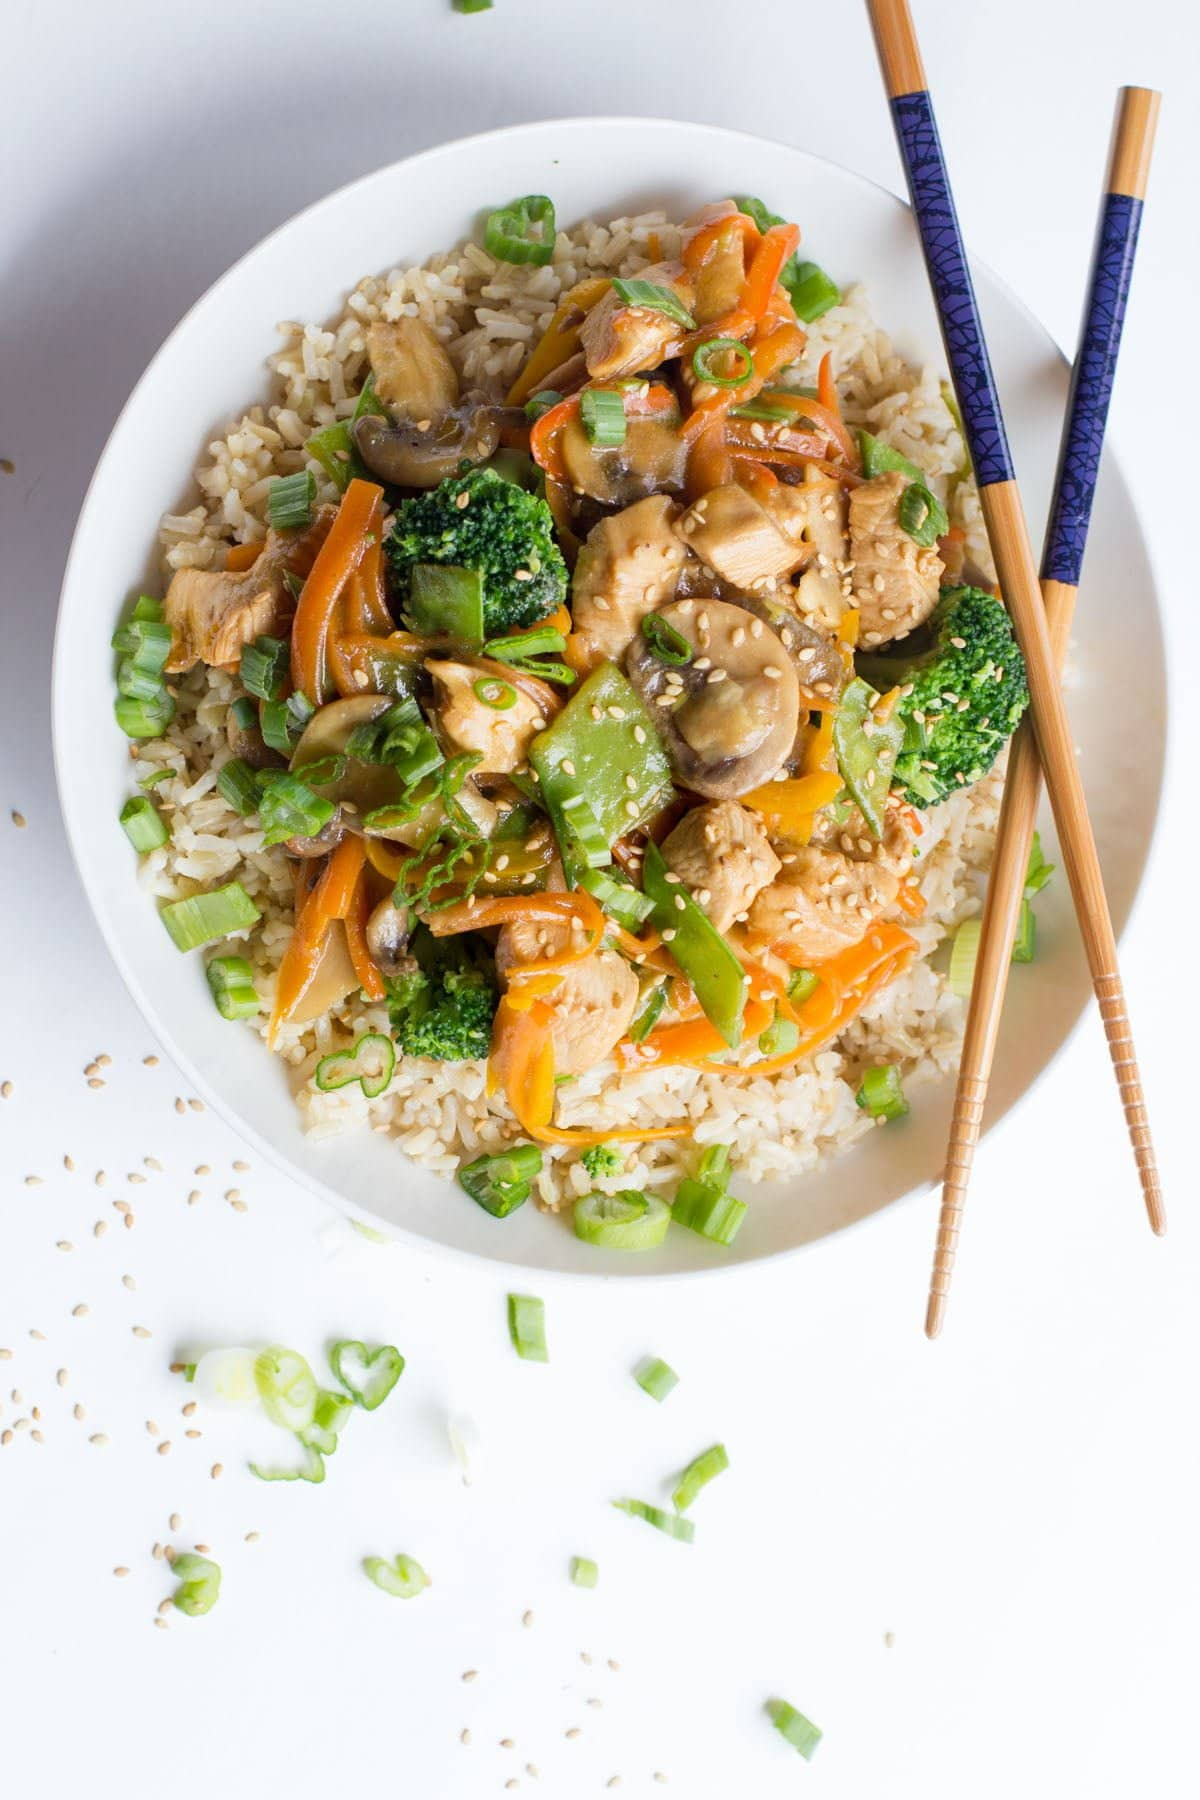 Overhead shot of Healthy Chicken Stir Fry on top of brown rice in a white bowl with crossed chopsticks